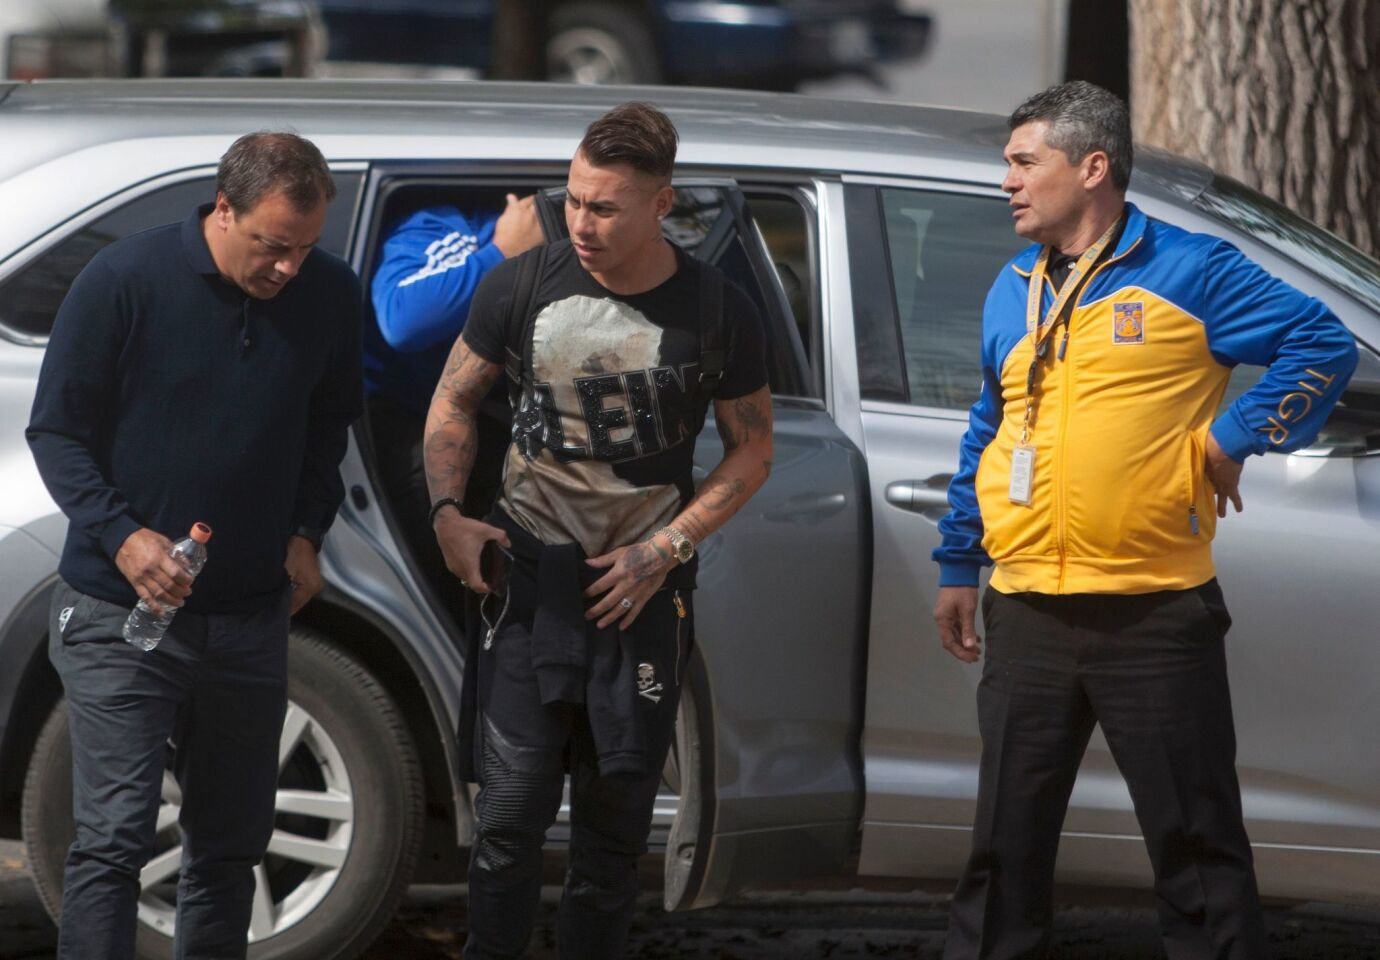 Chilean striker Eduardo Vargas (C) arrives for medical tests to play with his new team Mexican Tigres at the University Hospital of the city of Monterrey in Nuevo Leon, Mexico, on January 29, 2017. / AFP PHOTO / JULIO AGUILARJULIO AGUILAR/AFP/Getty Images ** OUTS - ELSENT, FPG, CM - OUTS * NM, PH, VA if sourced by CT, LA or MoD **